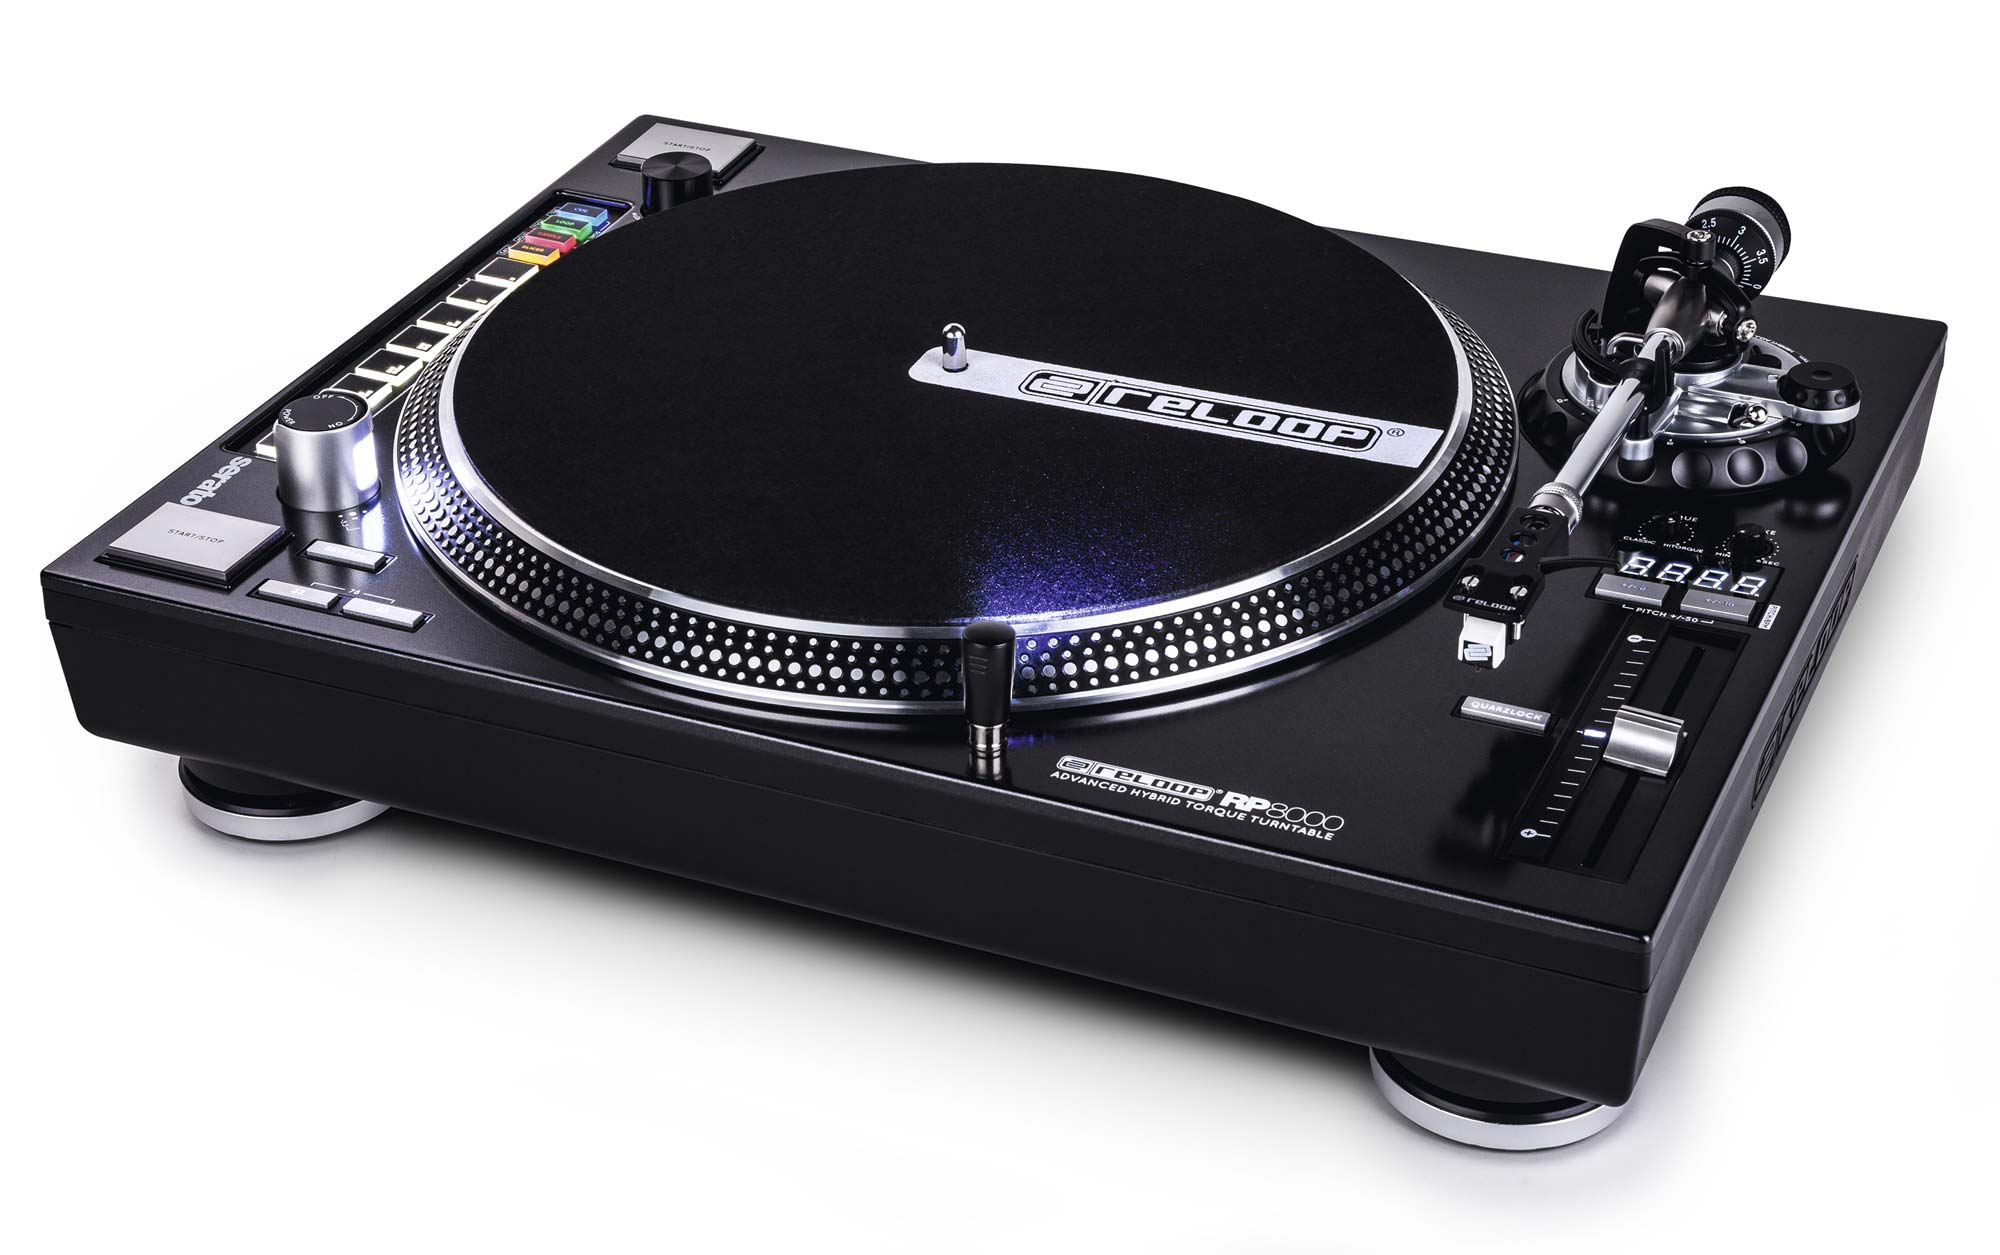 The Reloop RP-8000 turntable, with it's MIDI functionality, adjustable torque and a host of other features is part of a new breed of DJ turntables.